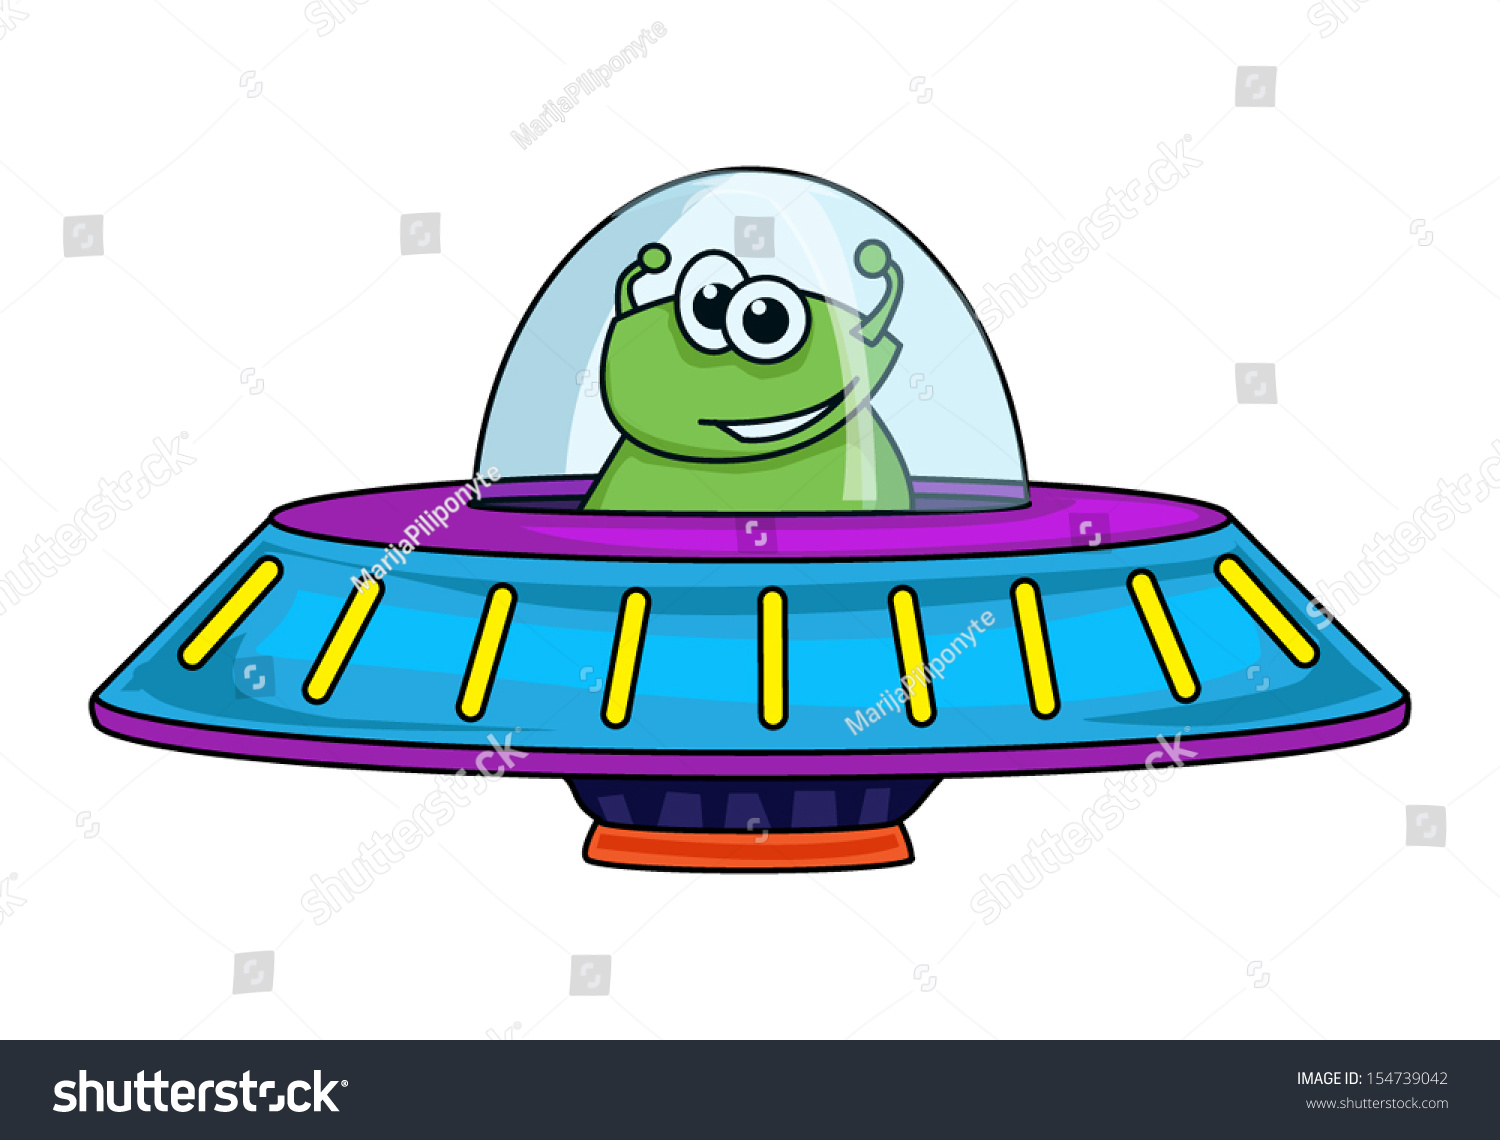 Green Alien In A Cute Cartoon Space Ship, Vector